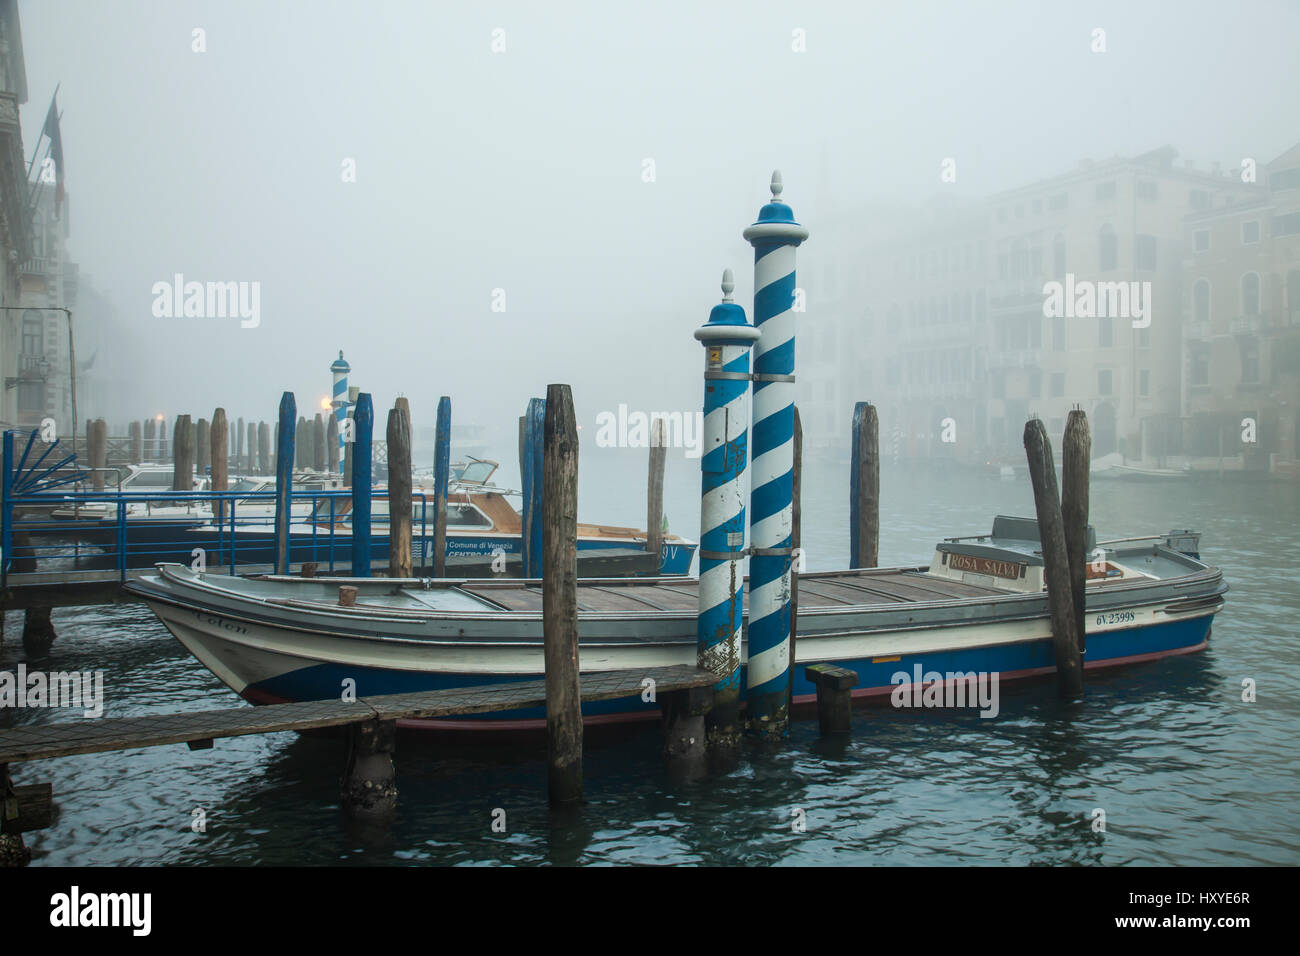 Foggy morning on Grand Canal, Venice, Italy. - Stock Image